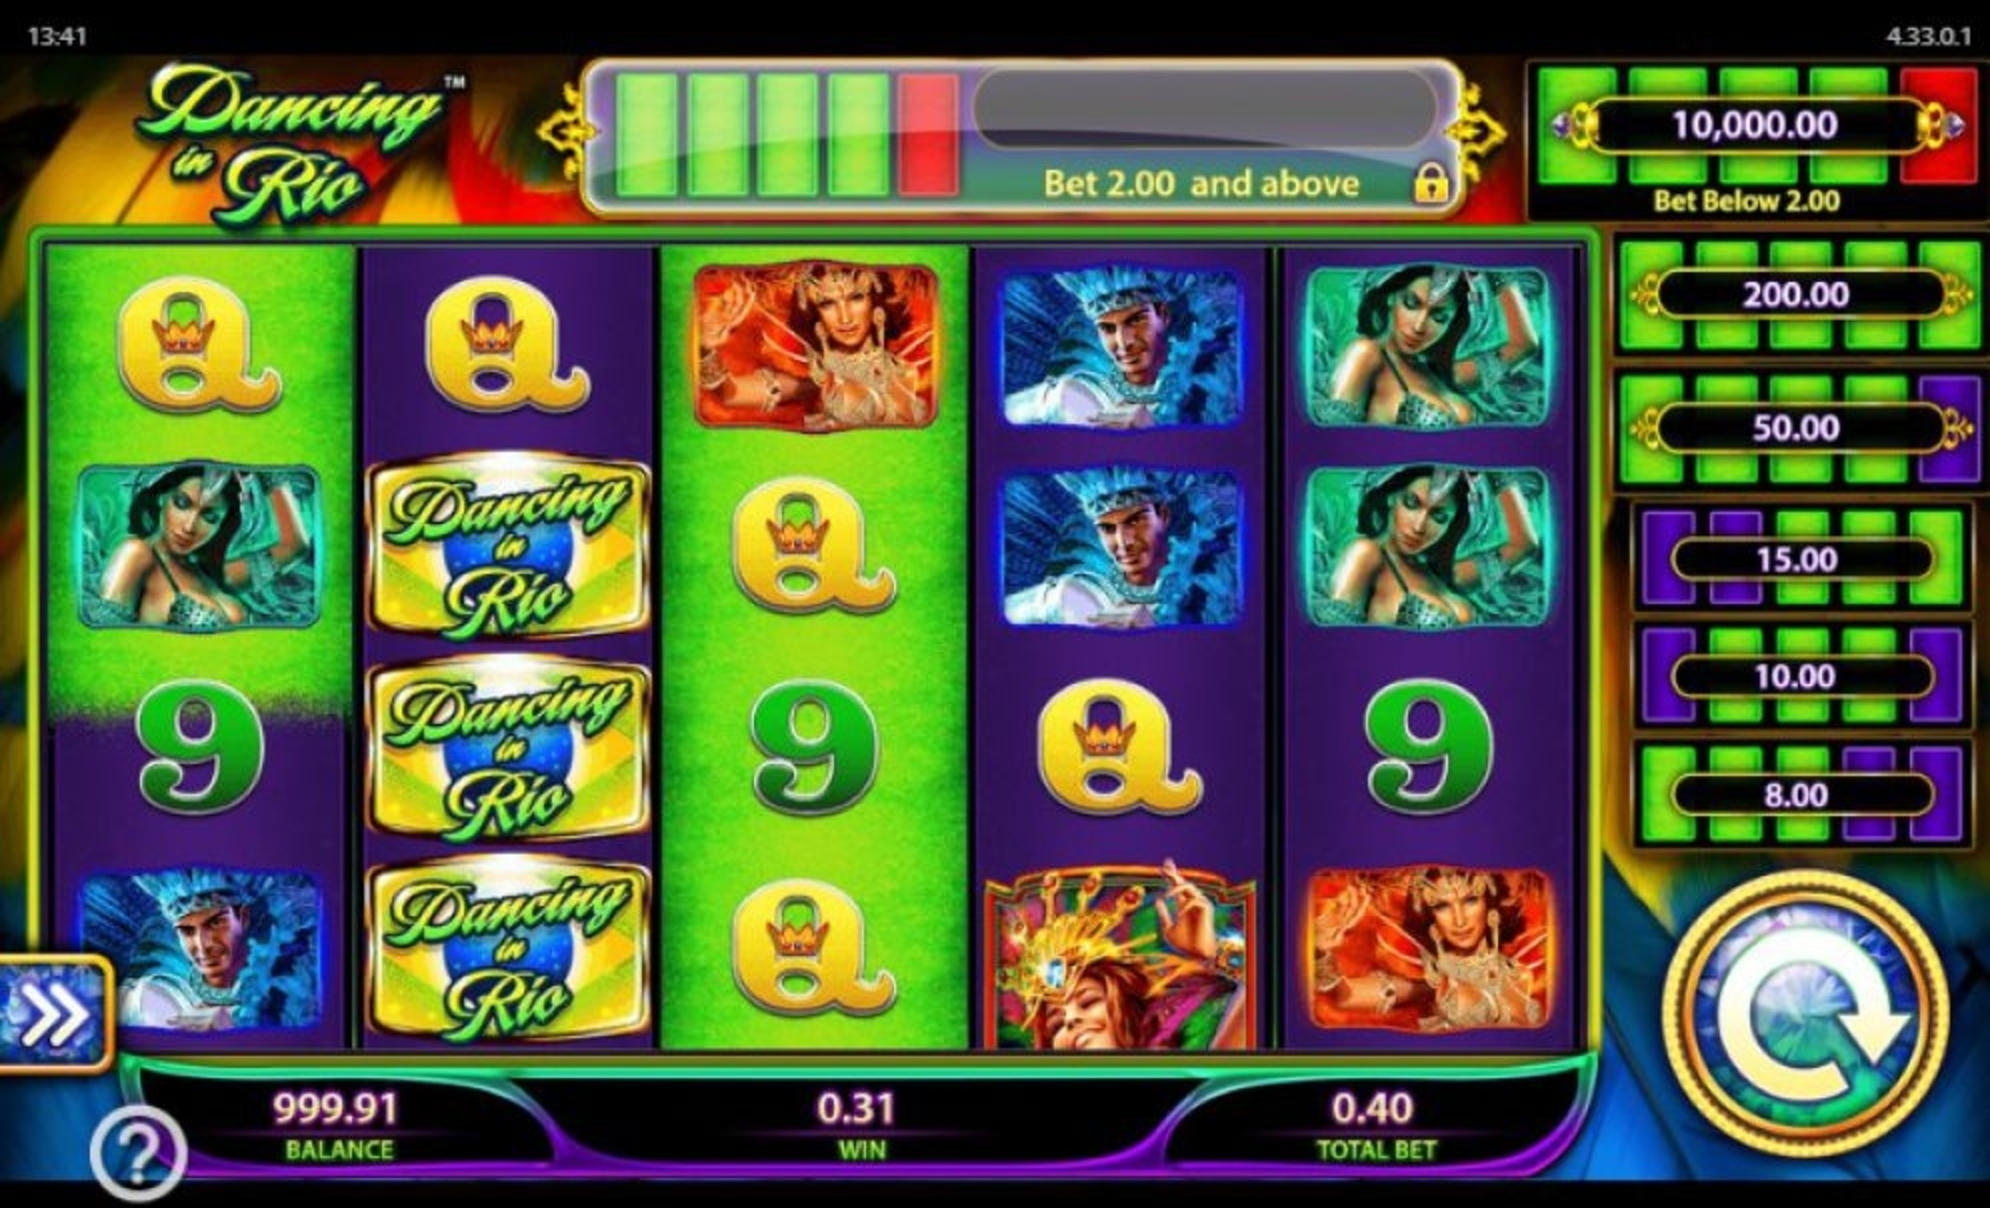 The Dancing in Rio Online Slot Demo Game by WMS